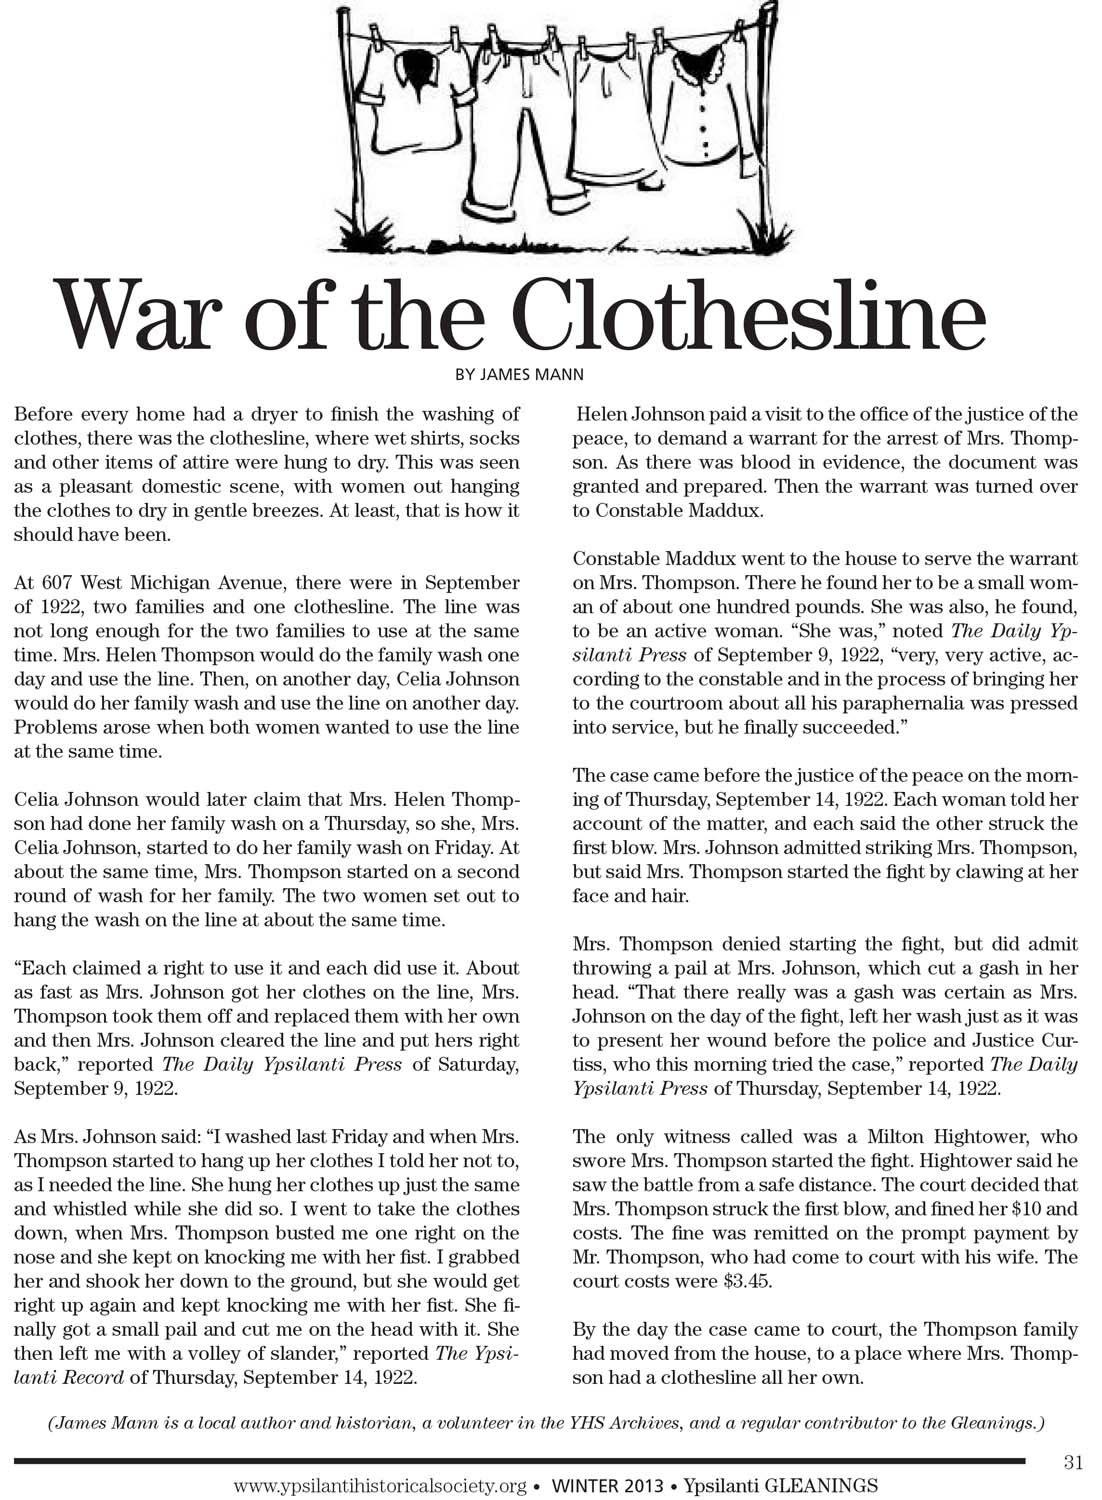 War of the Clothesline image